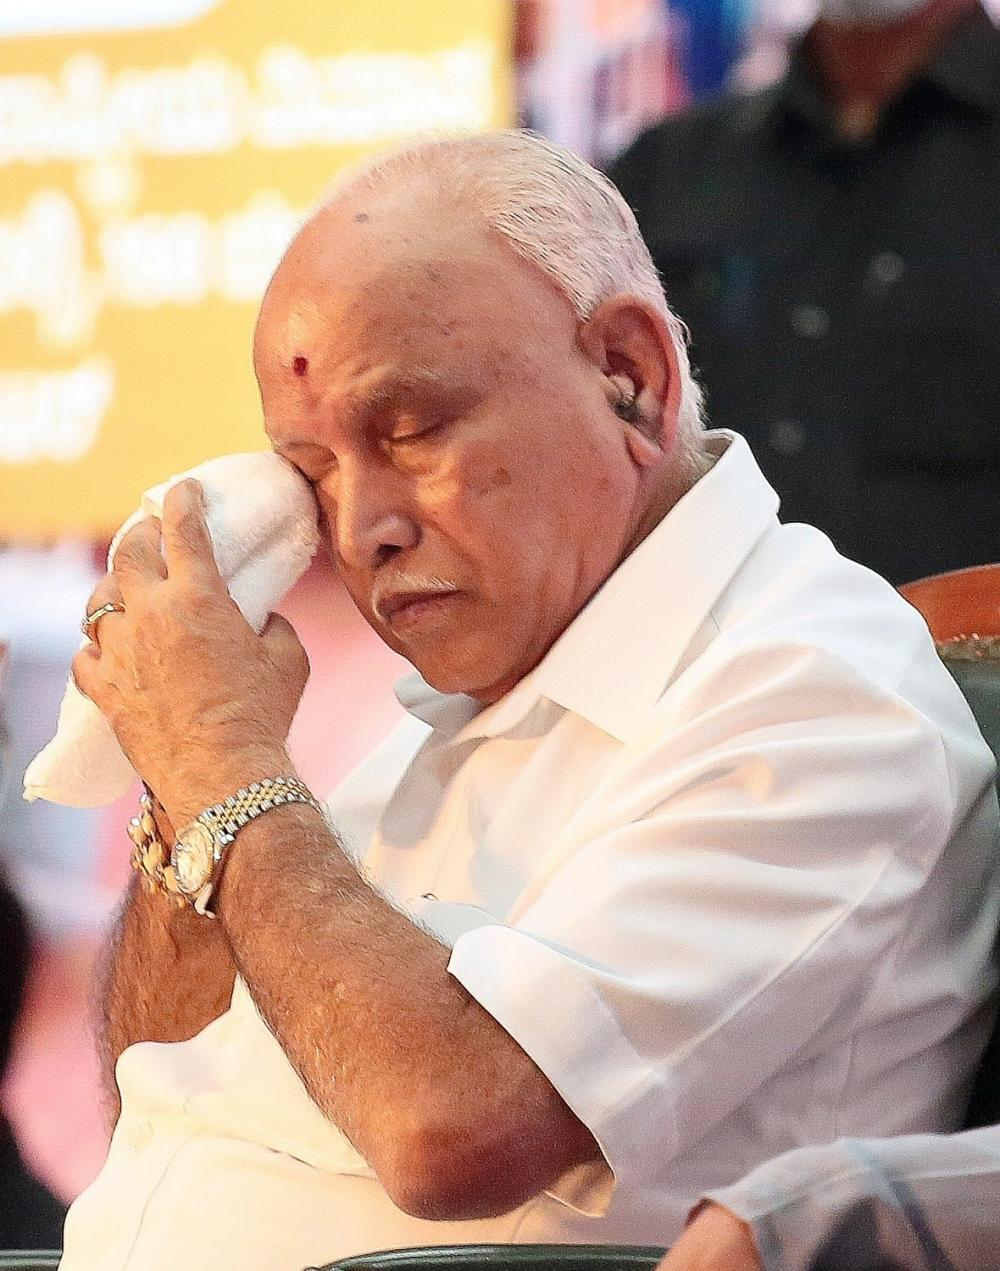 The Weekend Leader - Let Yediyurappa reveal who was responsible for his tears: Cong